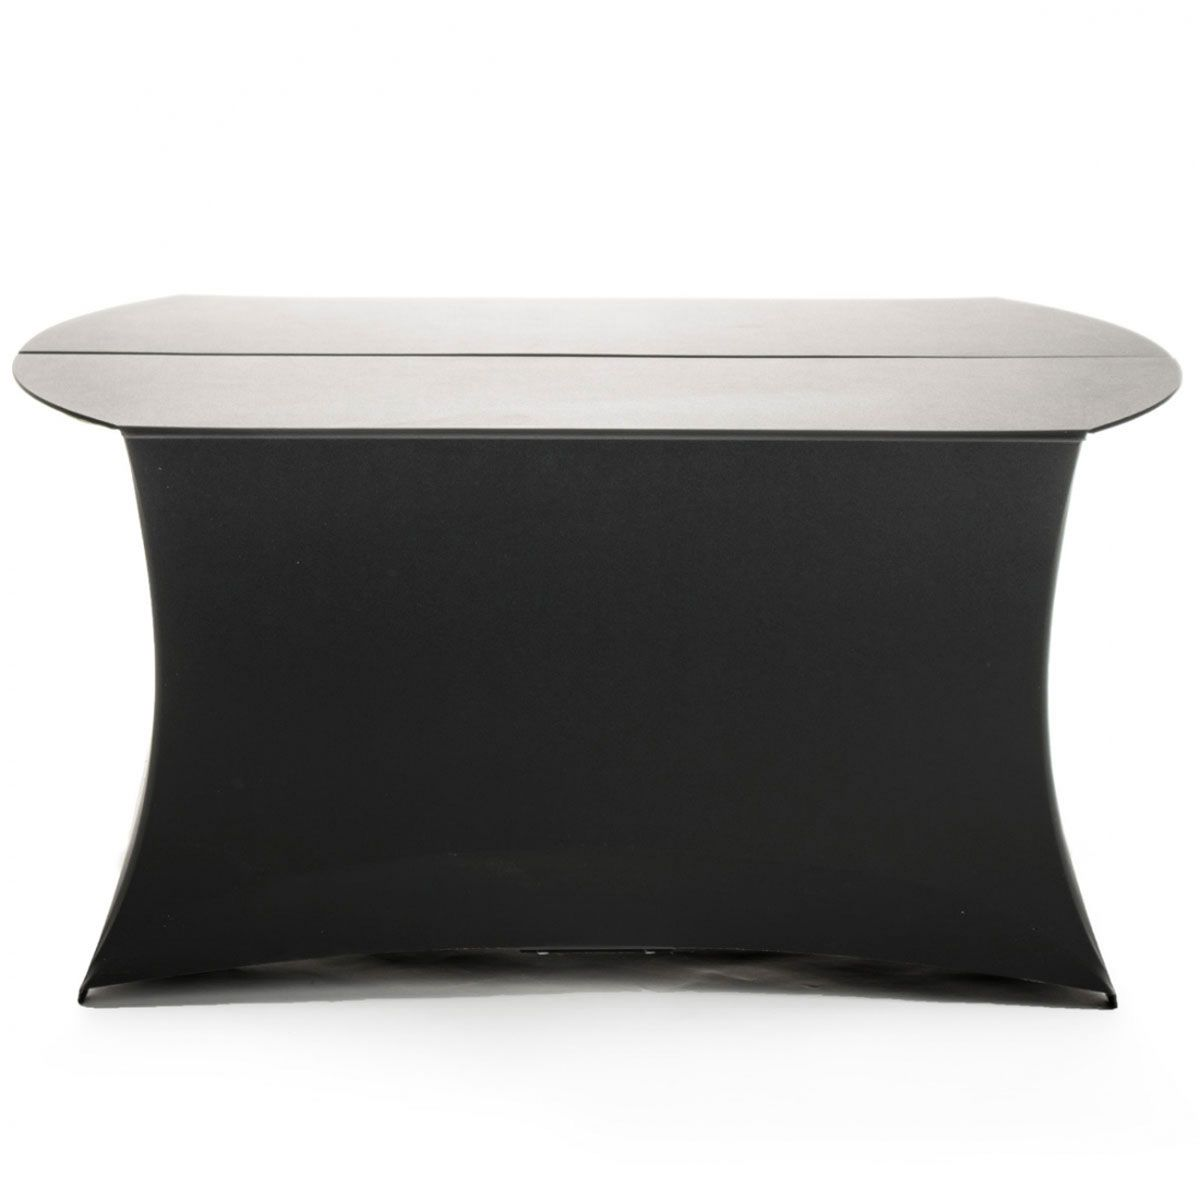 Table basse flux coffee 80 cm tables basses design flux for Table basse design 80 cm